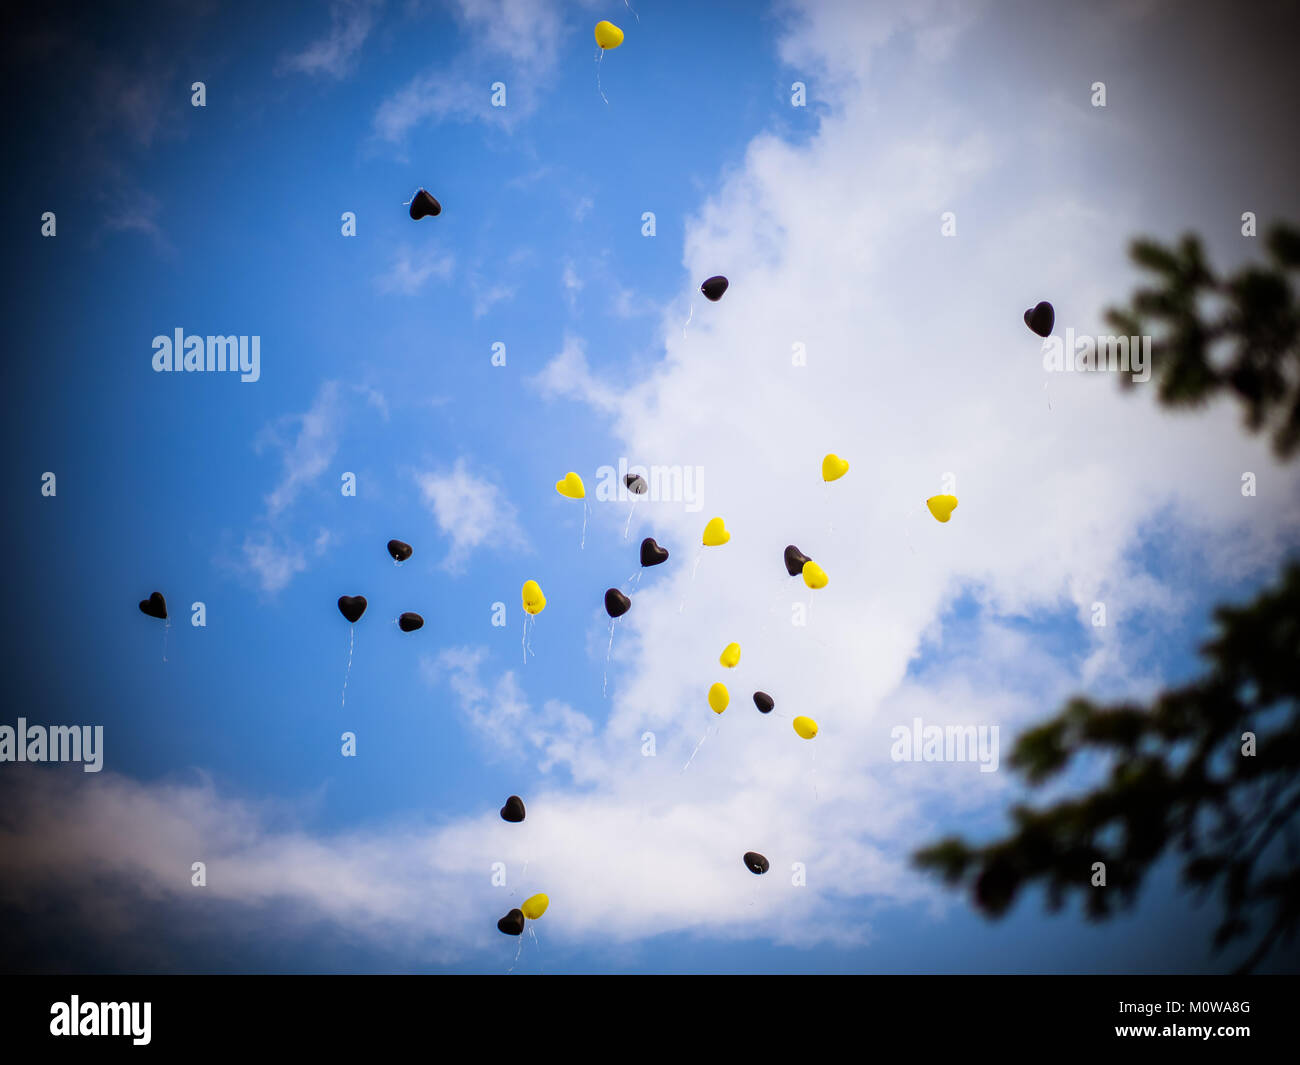 The balloons in the sky are black and yellow and the tree - Stock Image